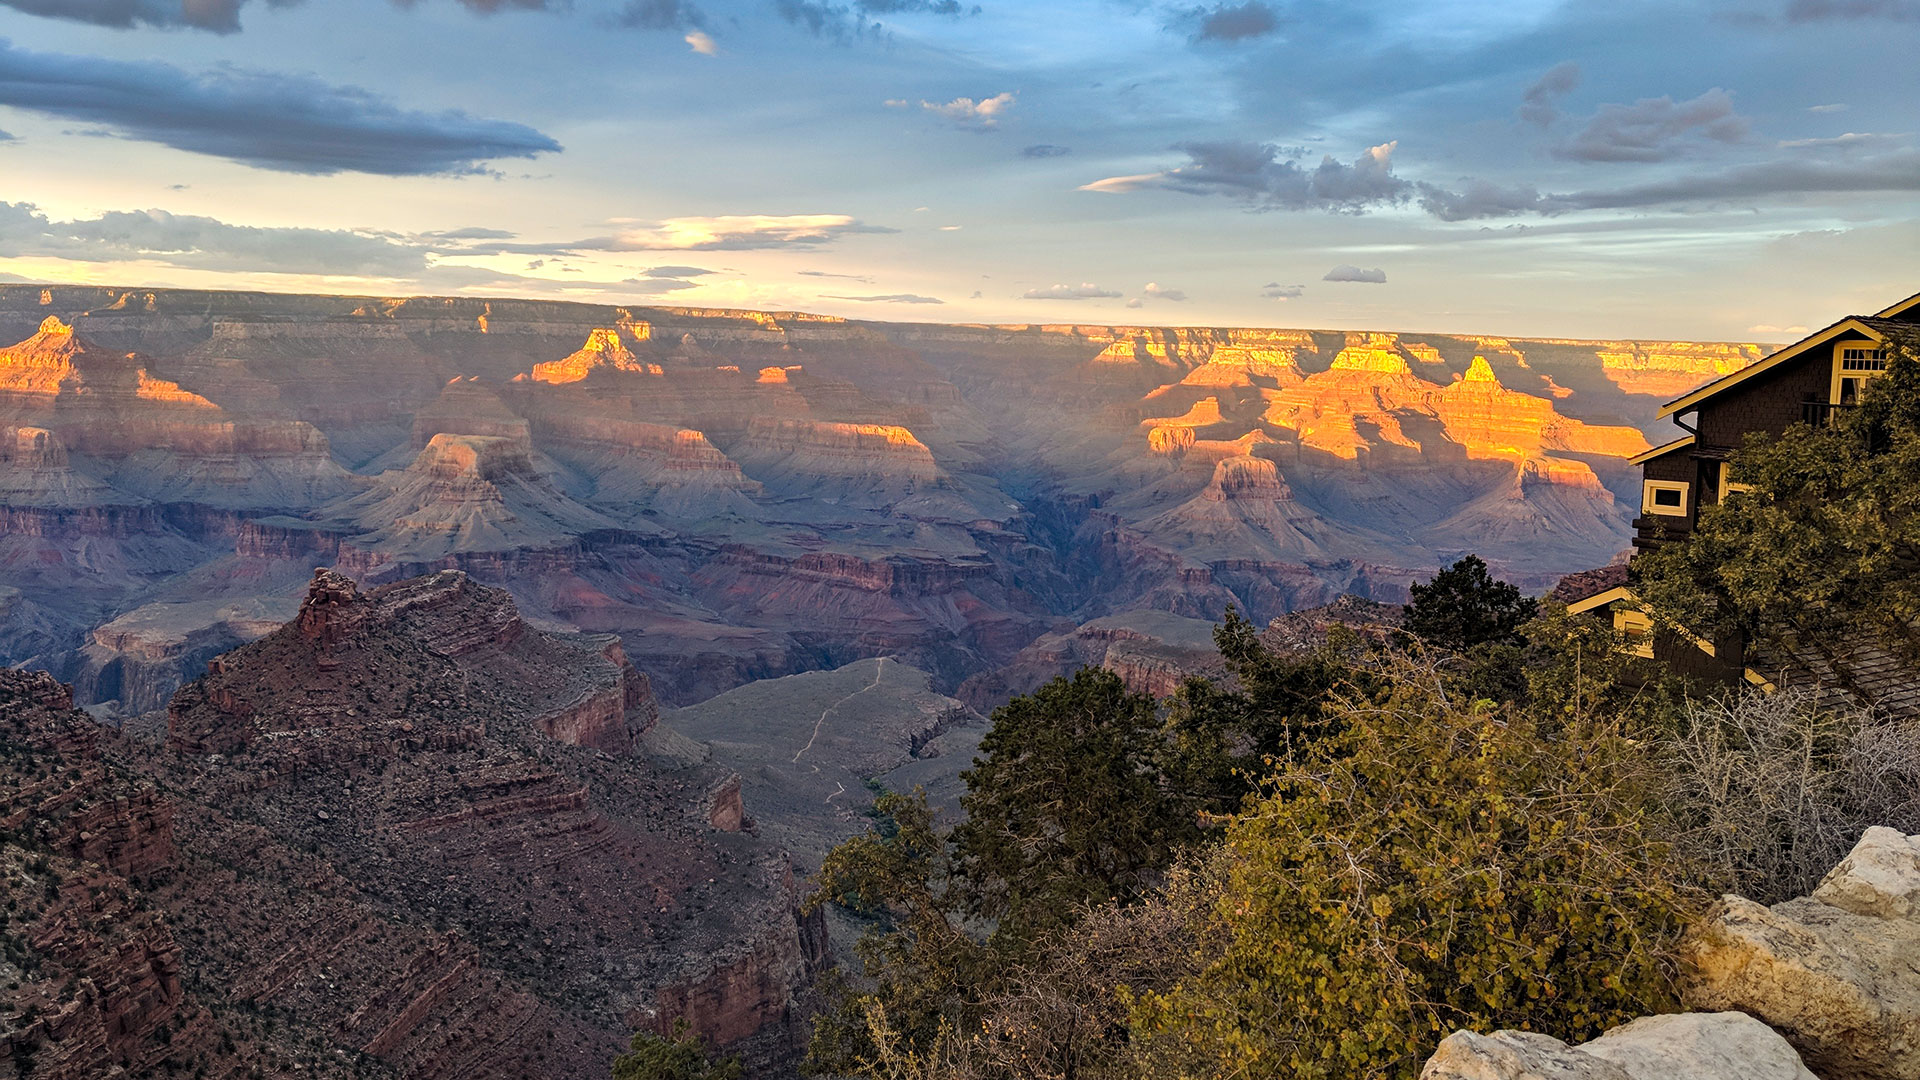 A view from the South Rim of the Grand Canyon, next to the Kolb Studio, September 2018.